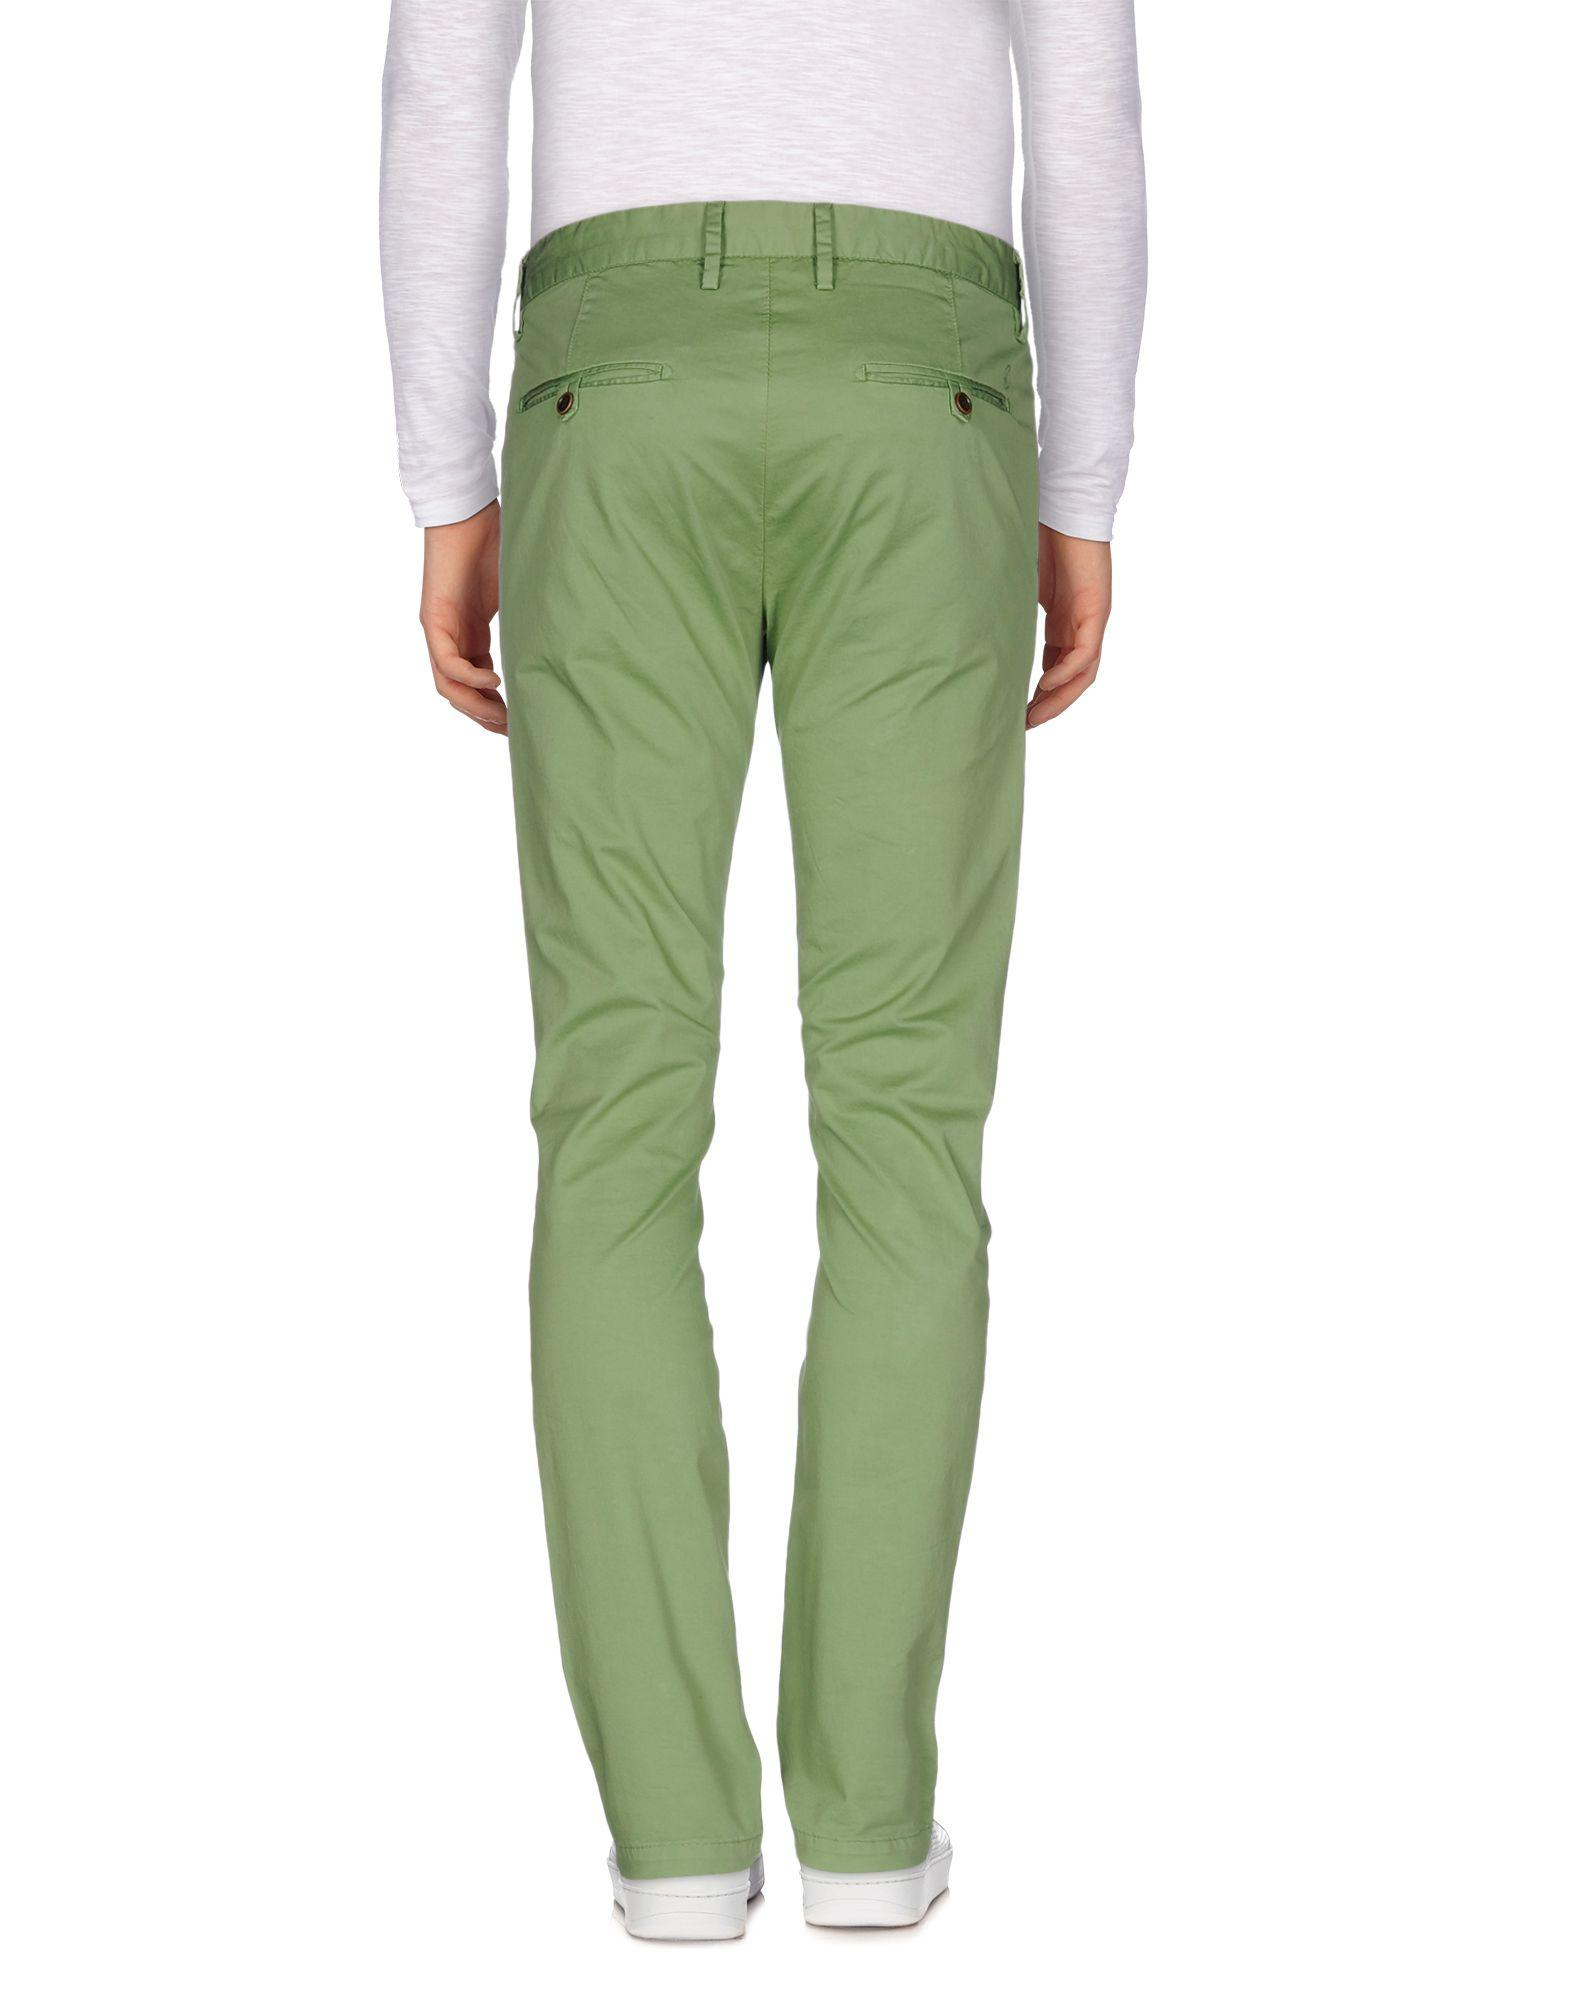 AT.P.CO Cotton Casual Trouser in Green (Yellow) for Men